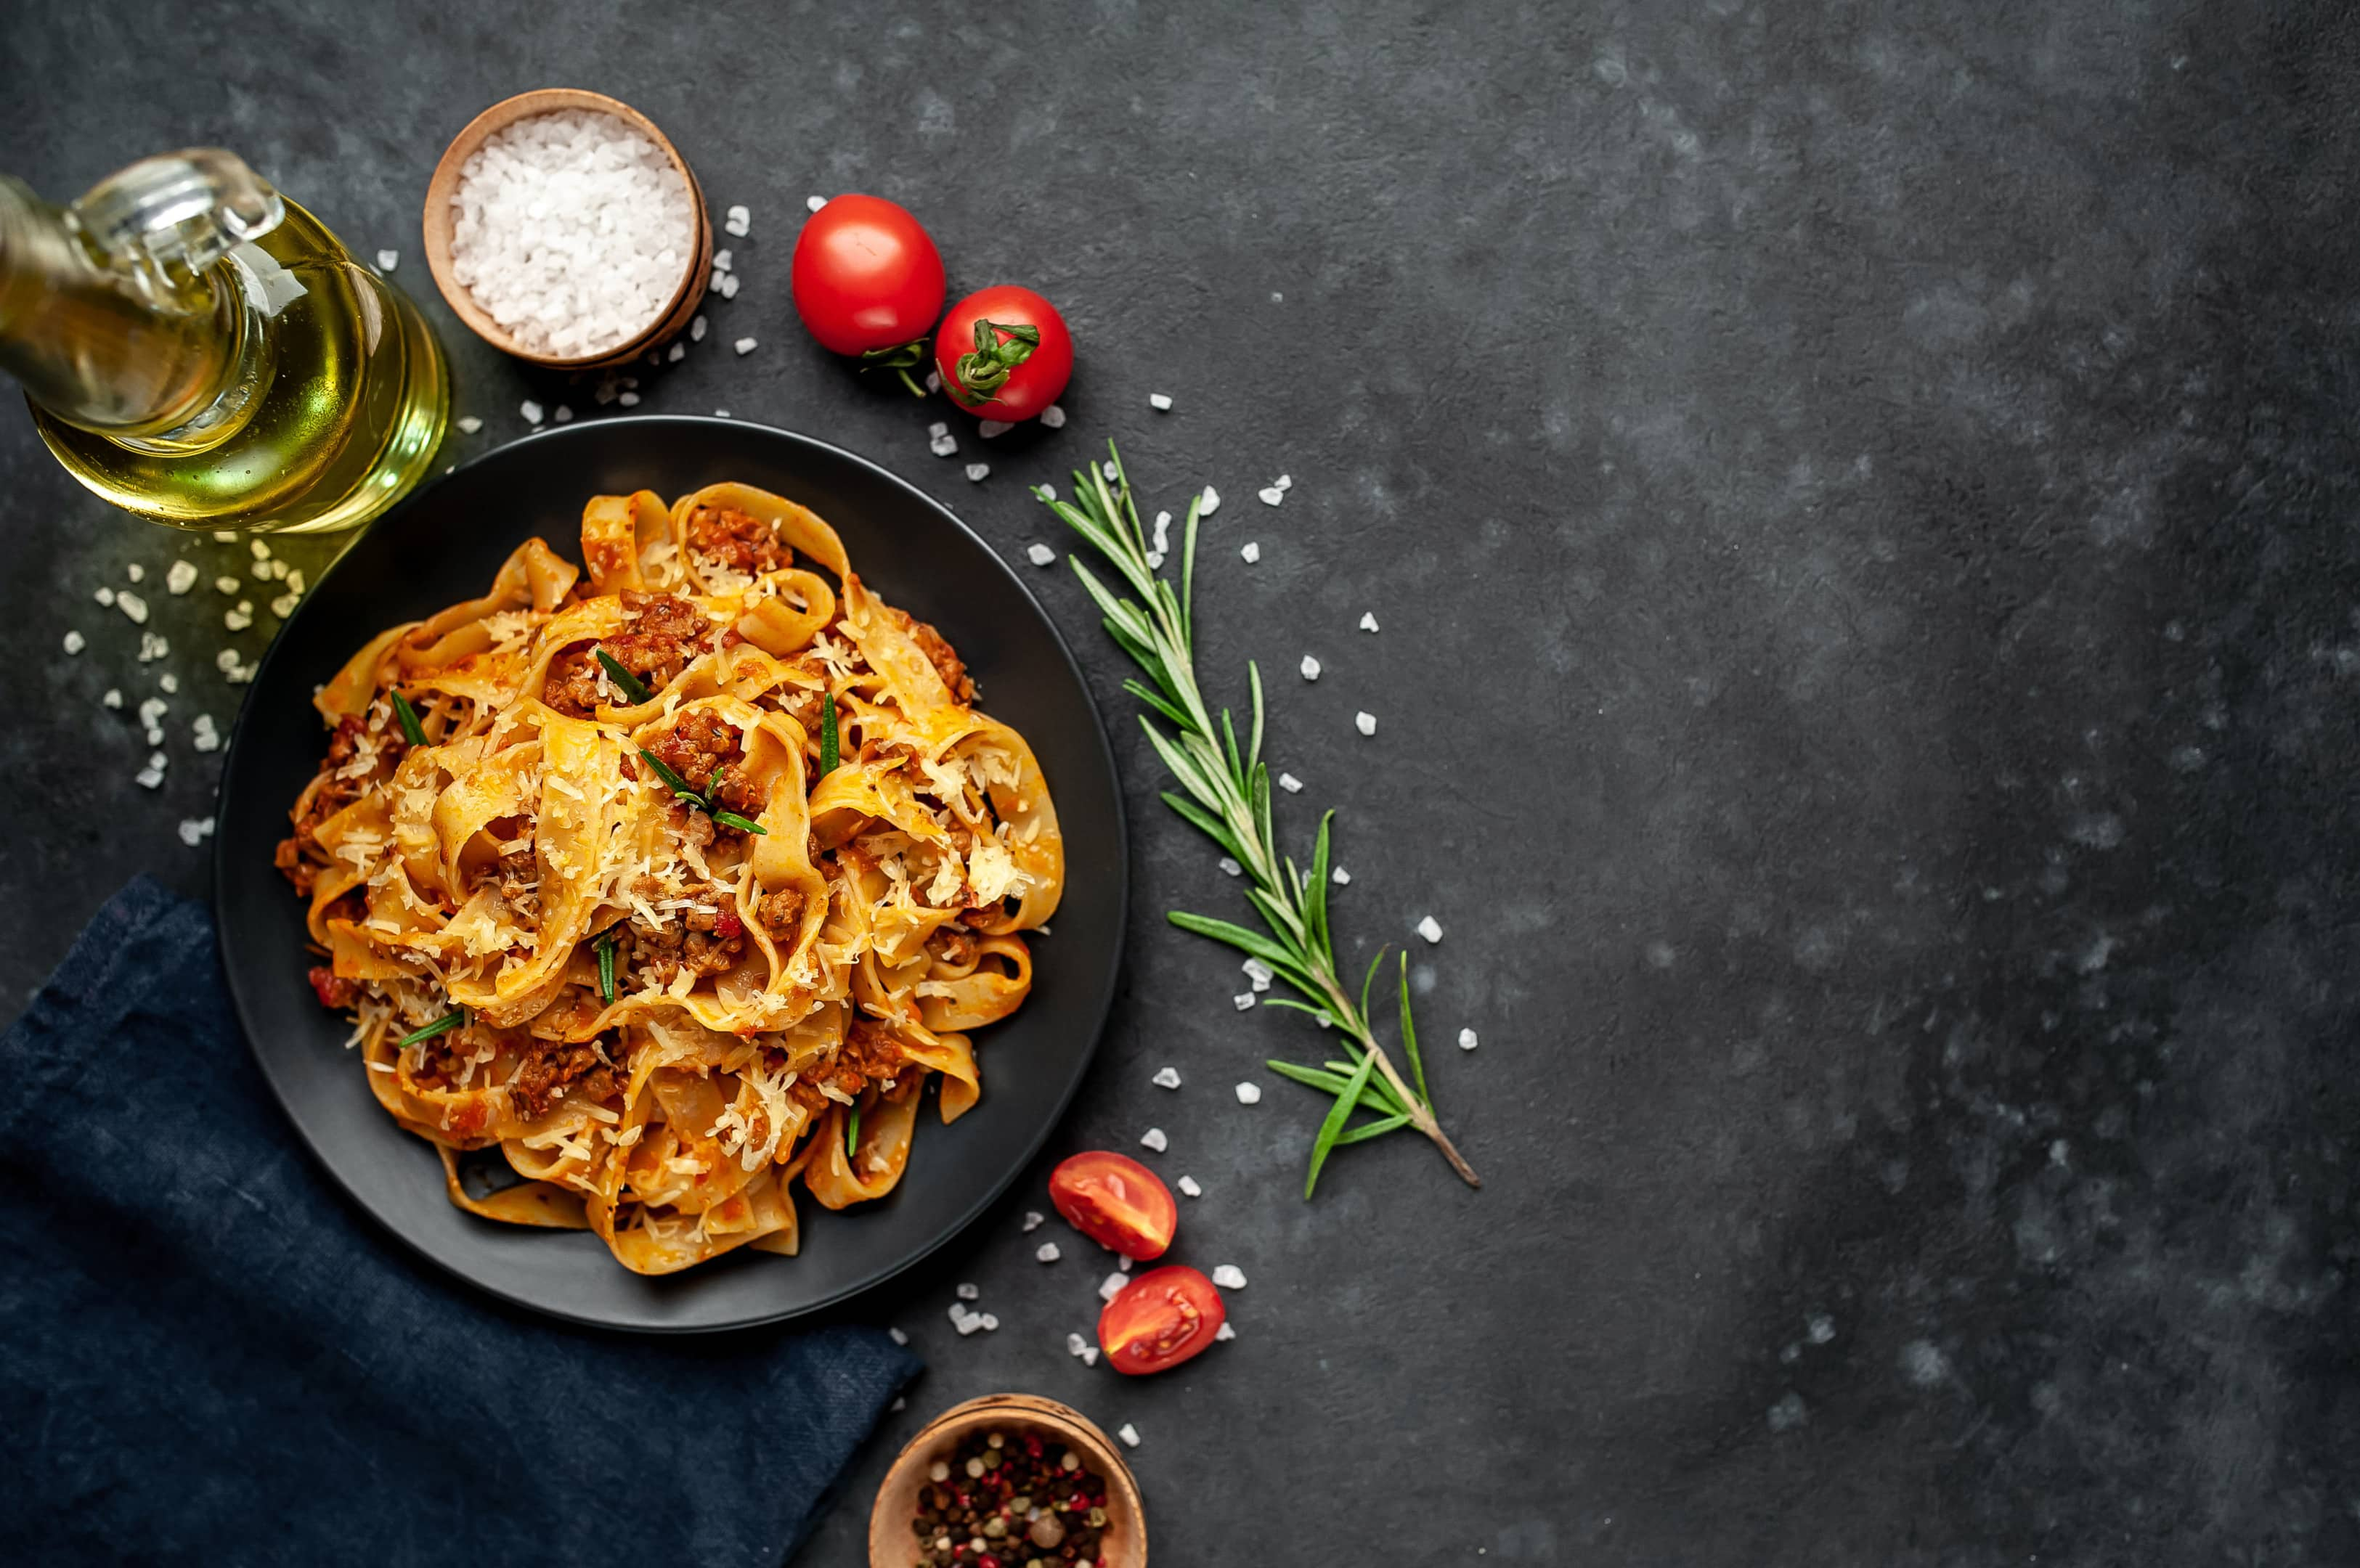 Pasta bolognese with spices on dark plate